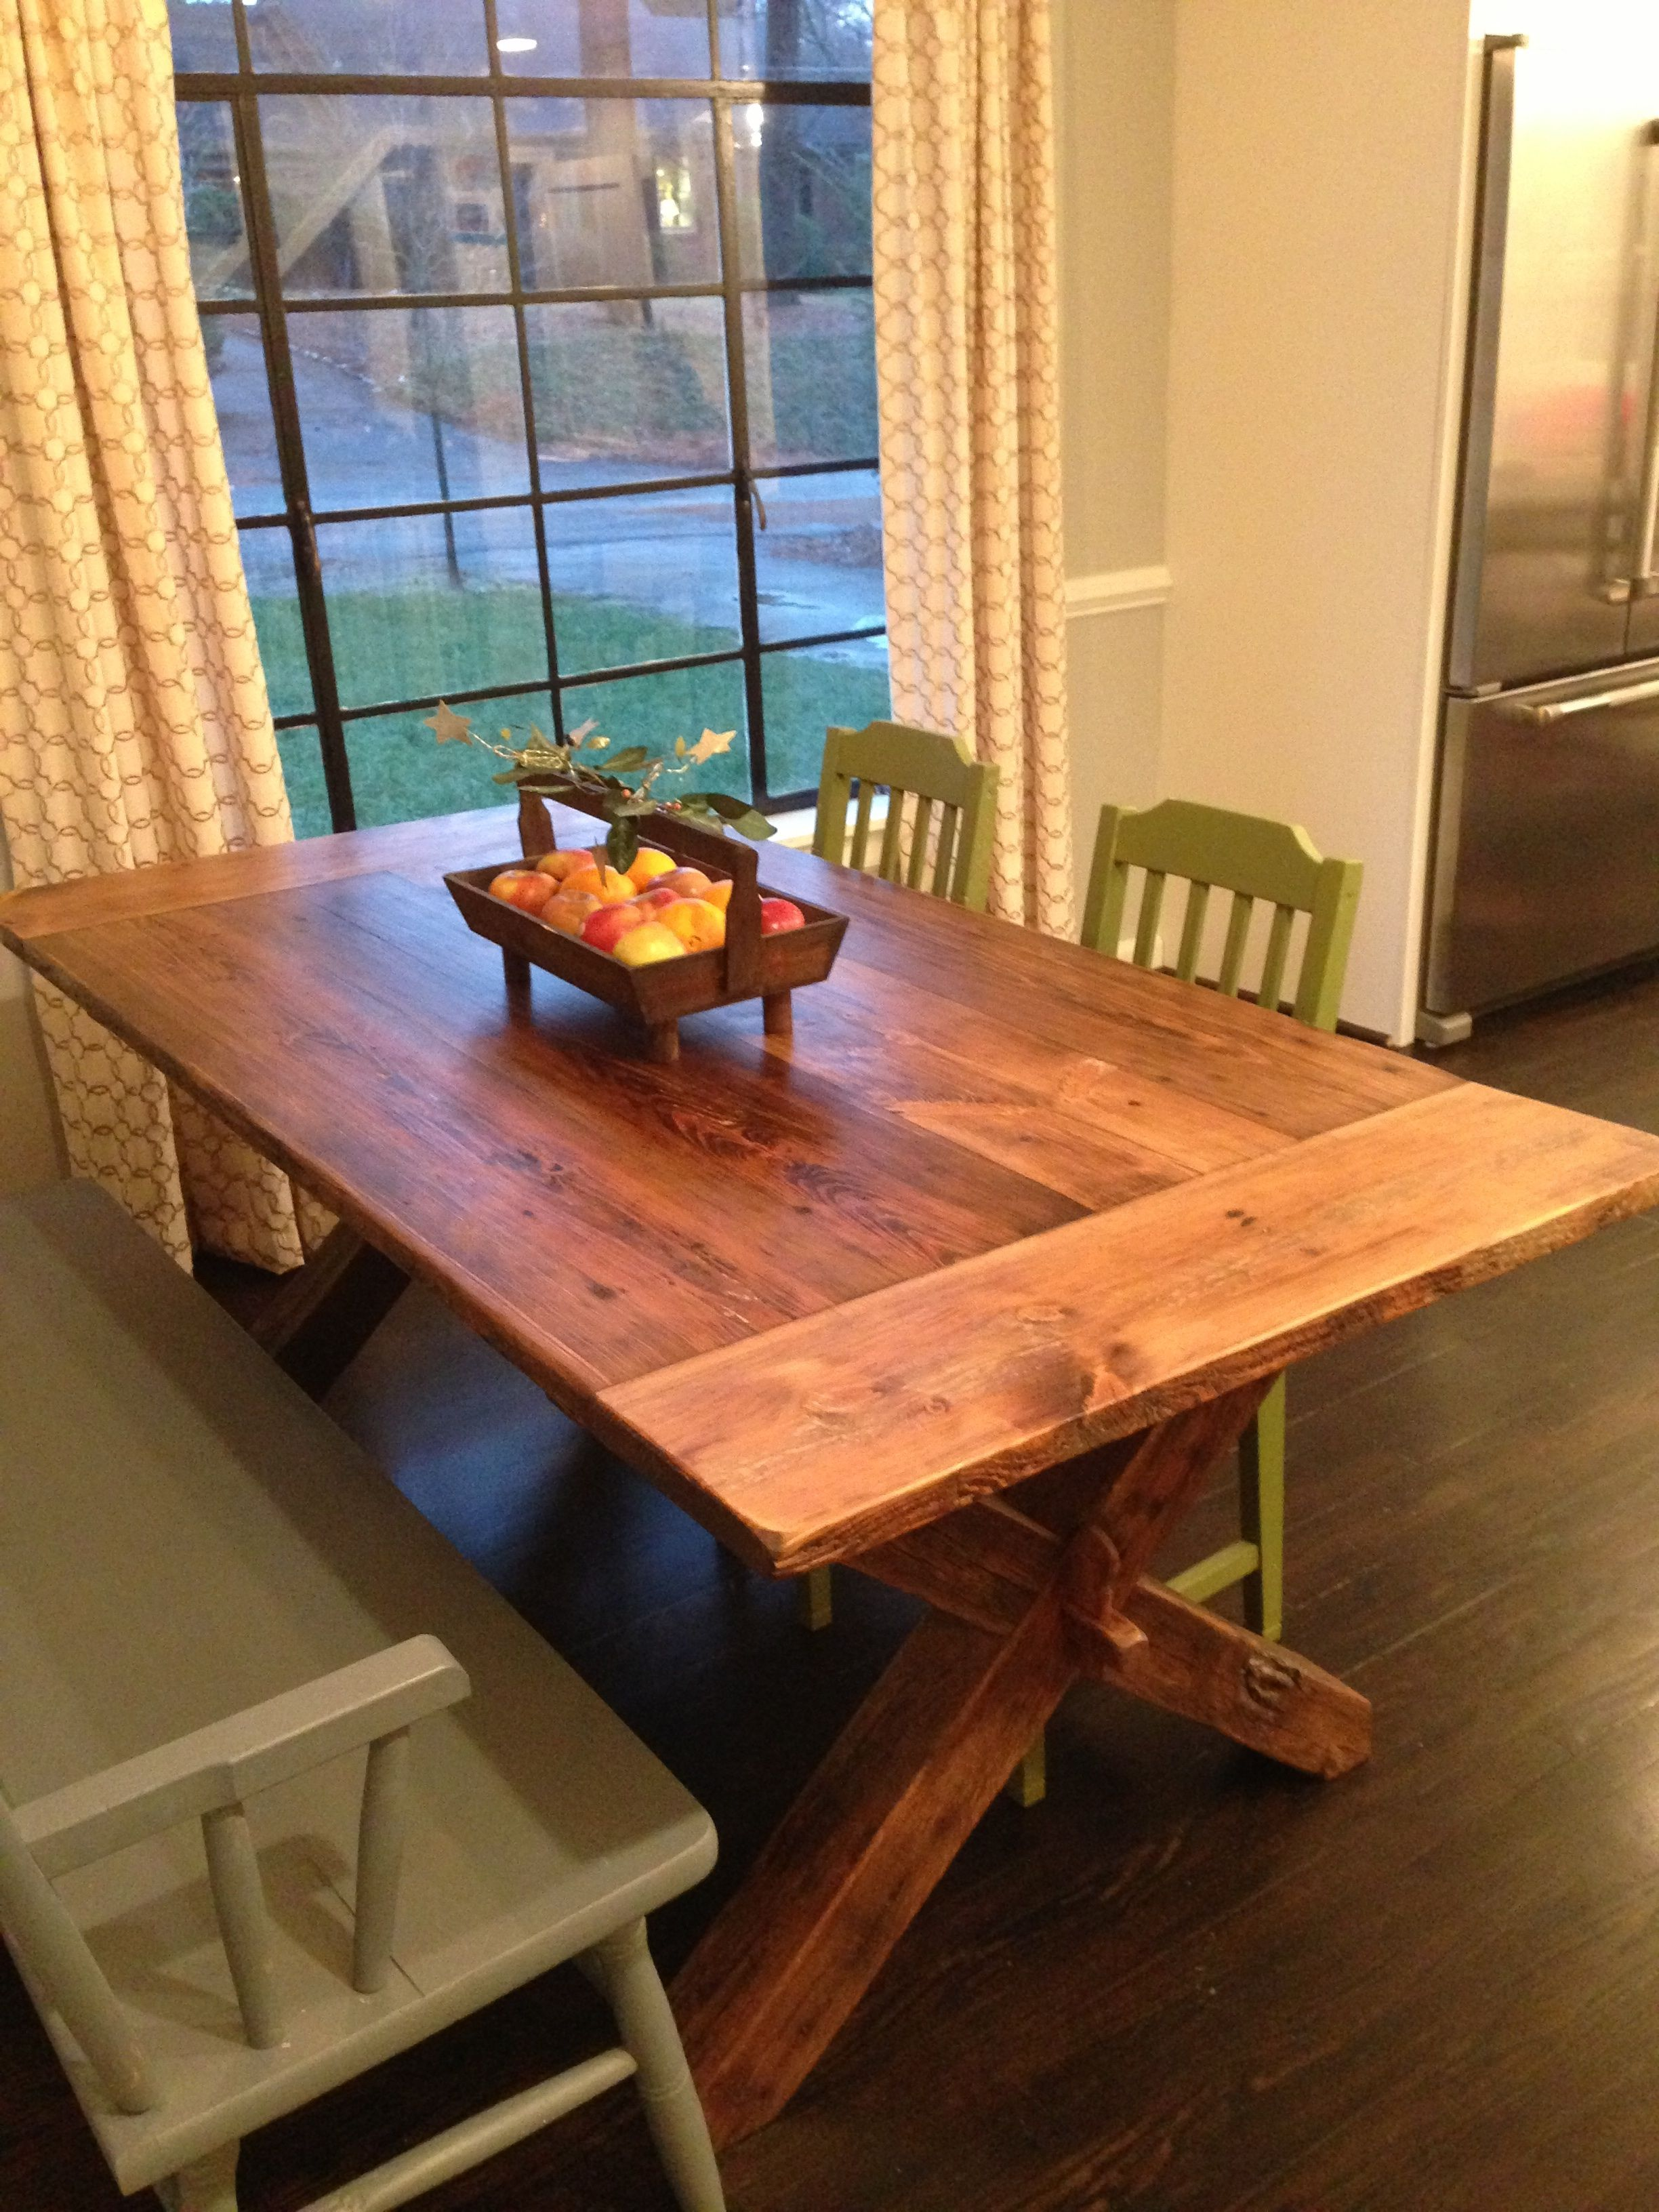 Awesome Custom, Reclaimed Wood Cross Leg Trestle Table Built By Concepts Created In  Staunton, VA